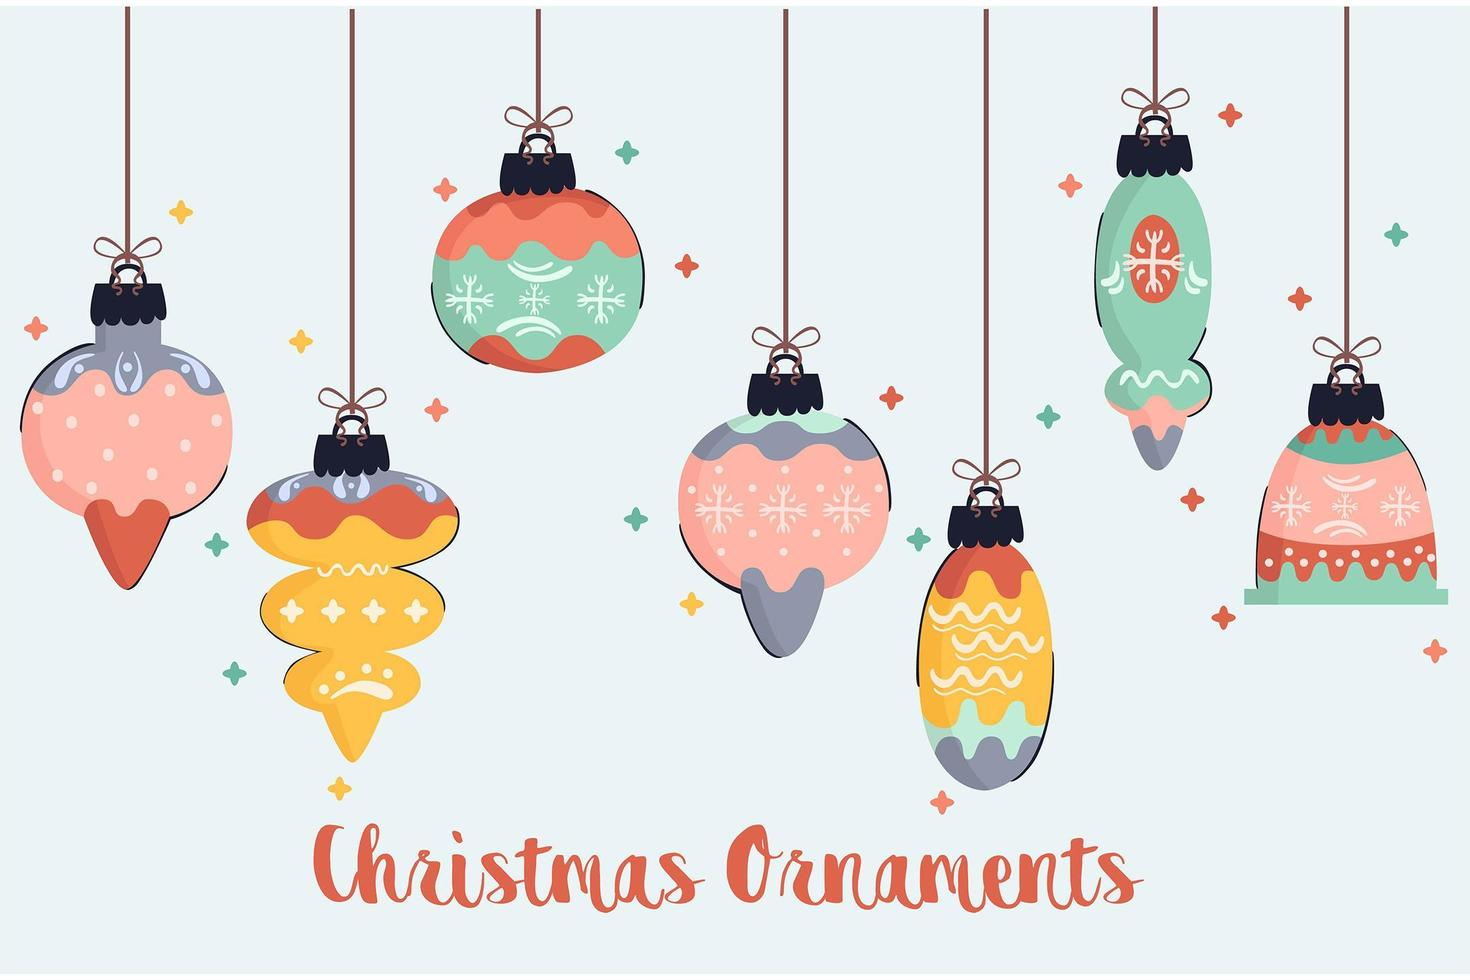 Christmas Ornaments Illustration Pack vector